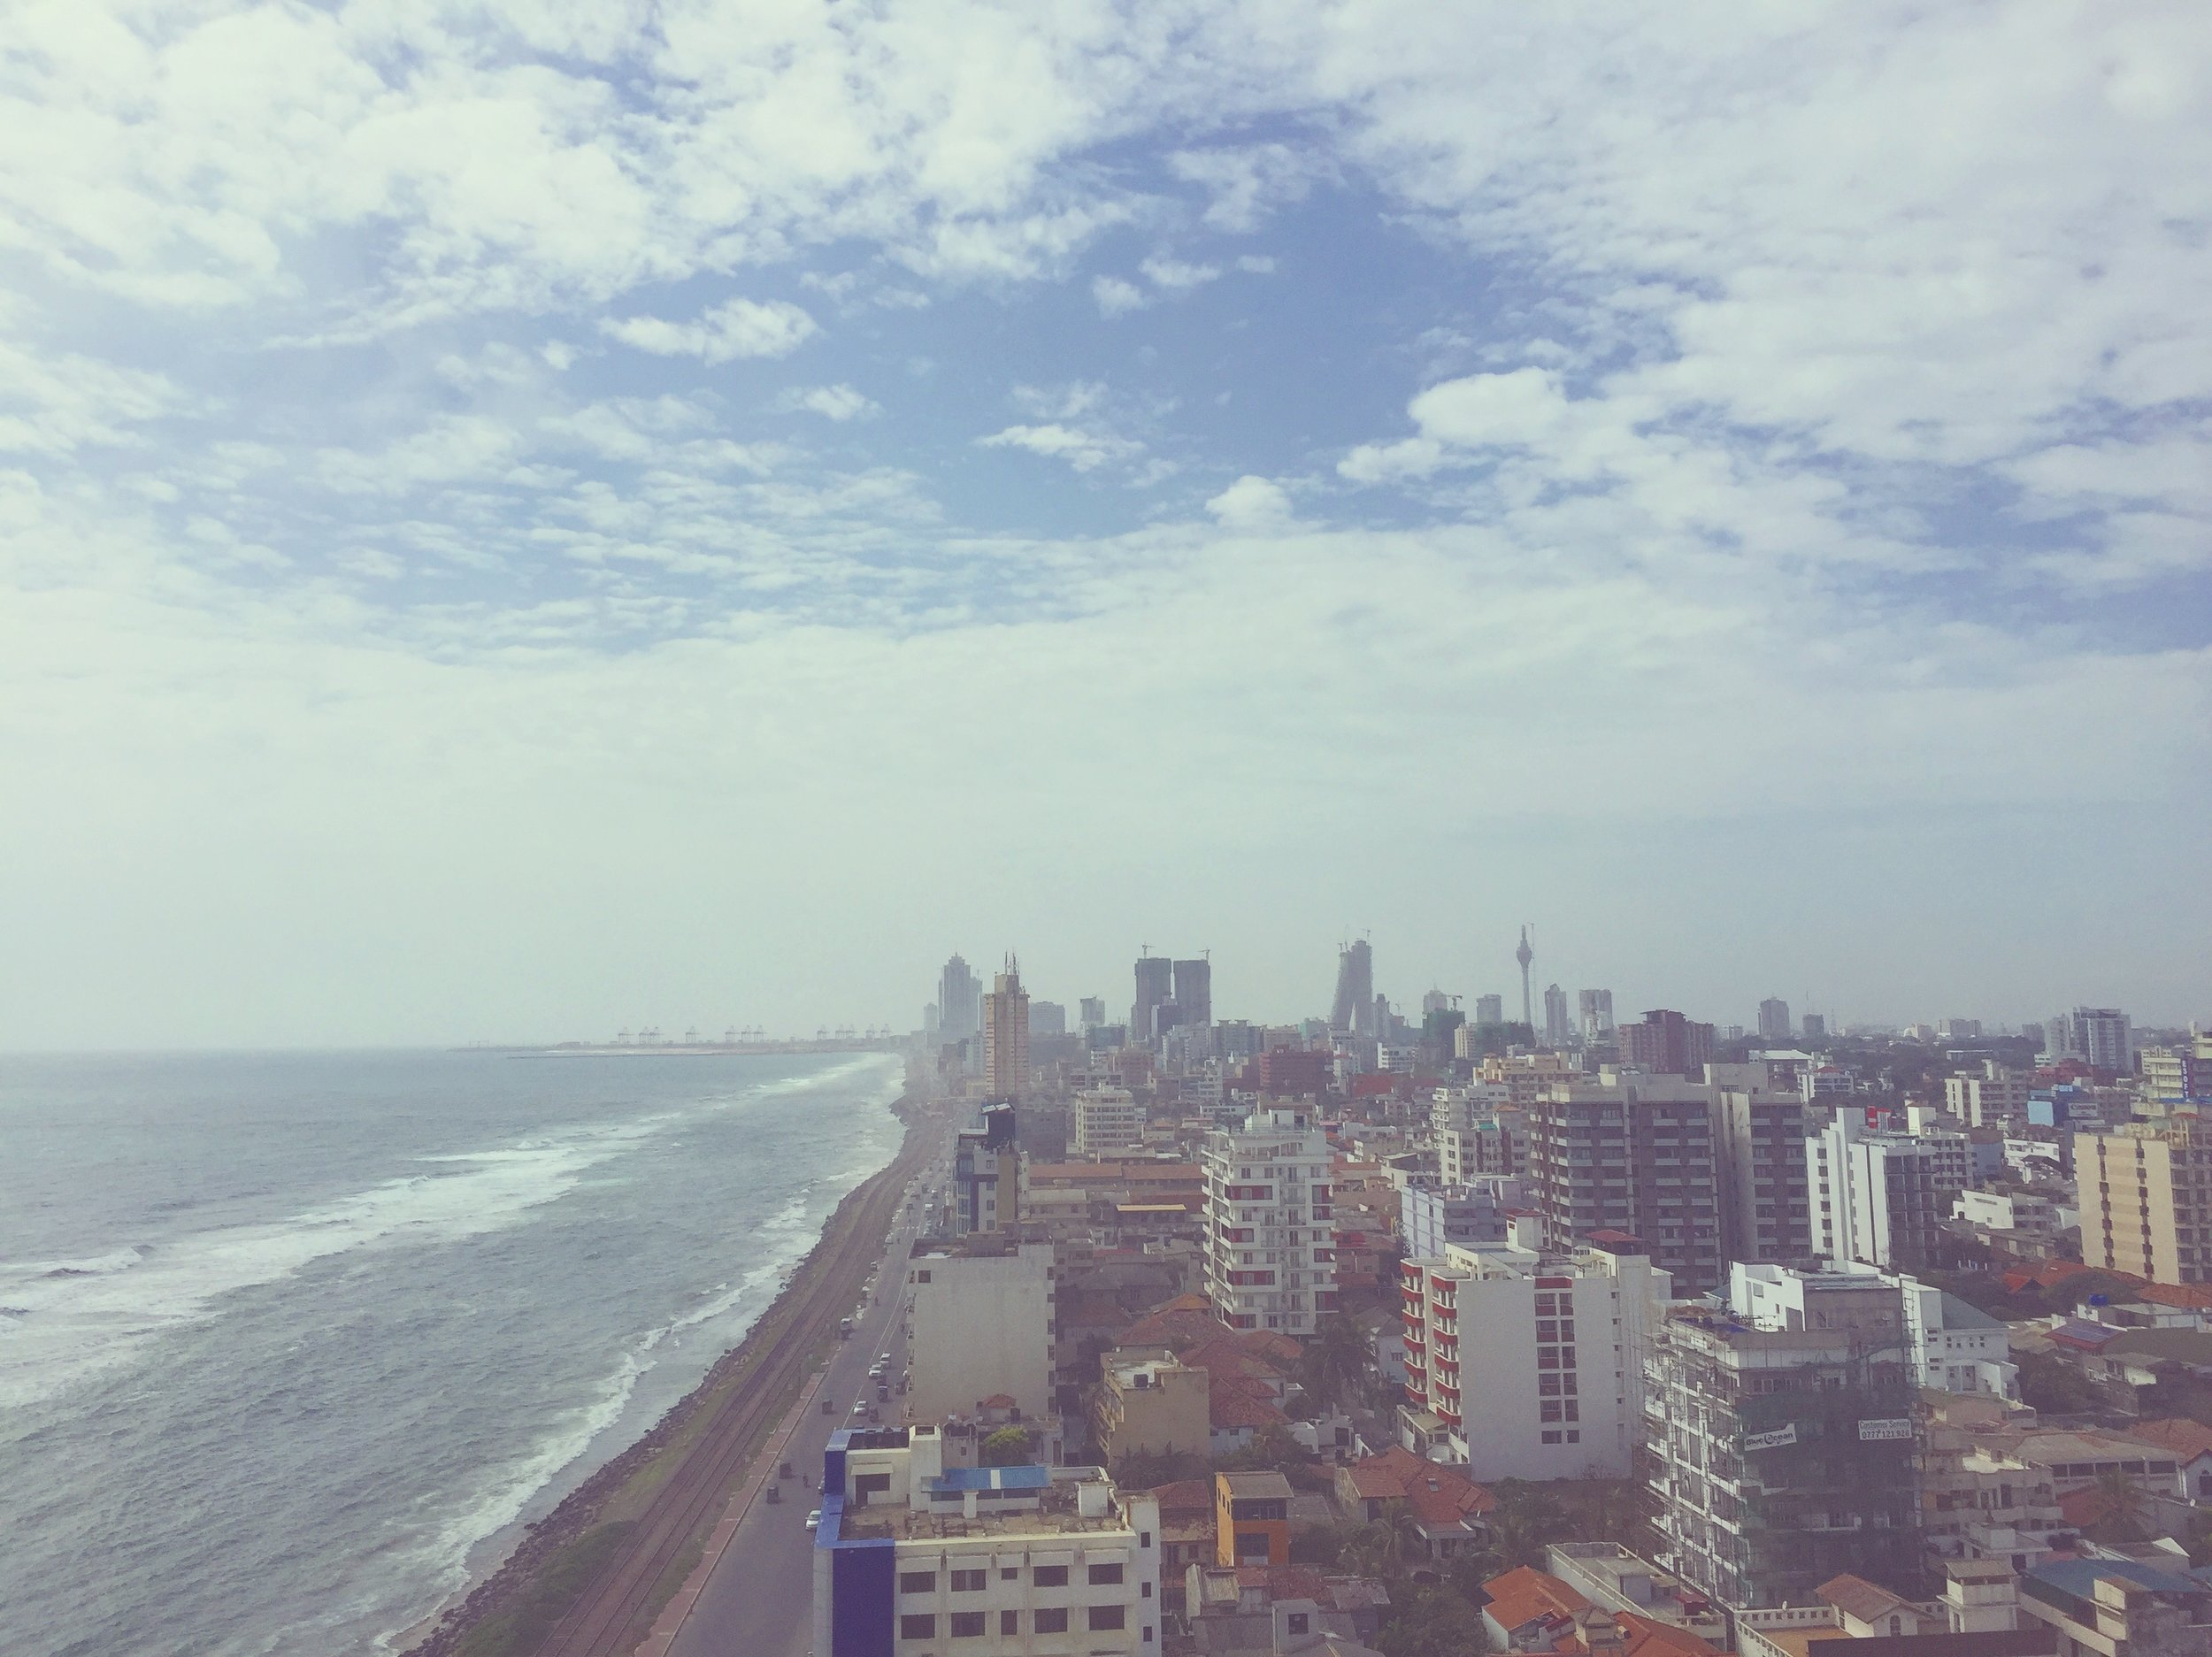 Colombo from above; the view from Ozo Hotel's rooftop pool and bar area (read more below).